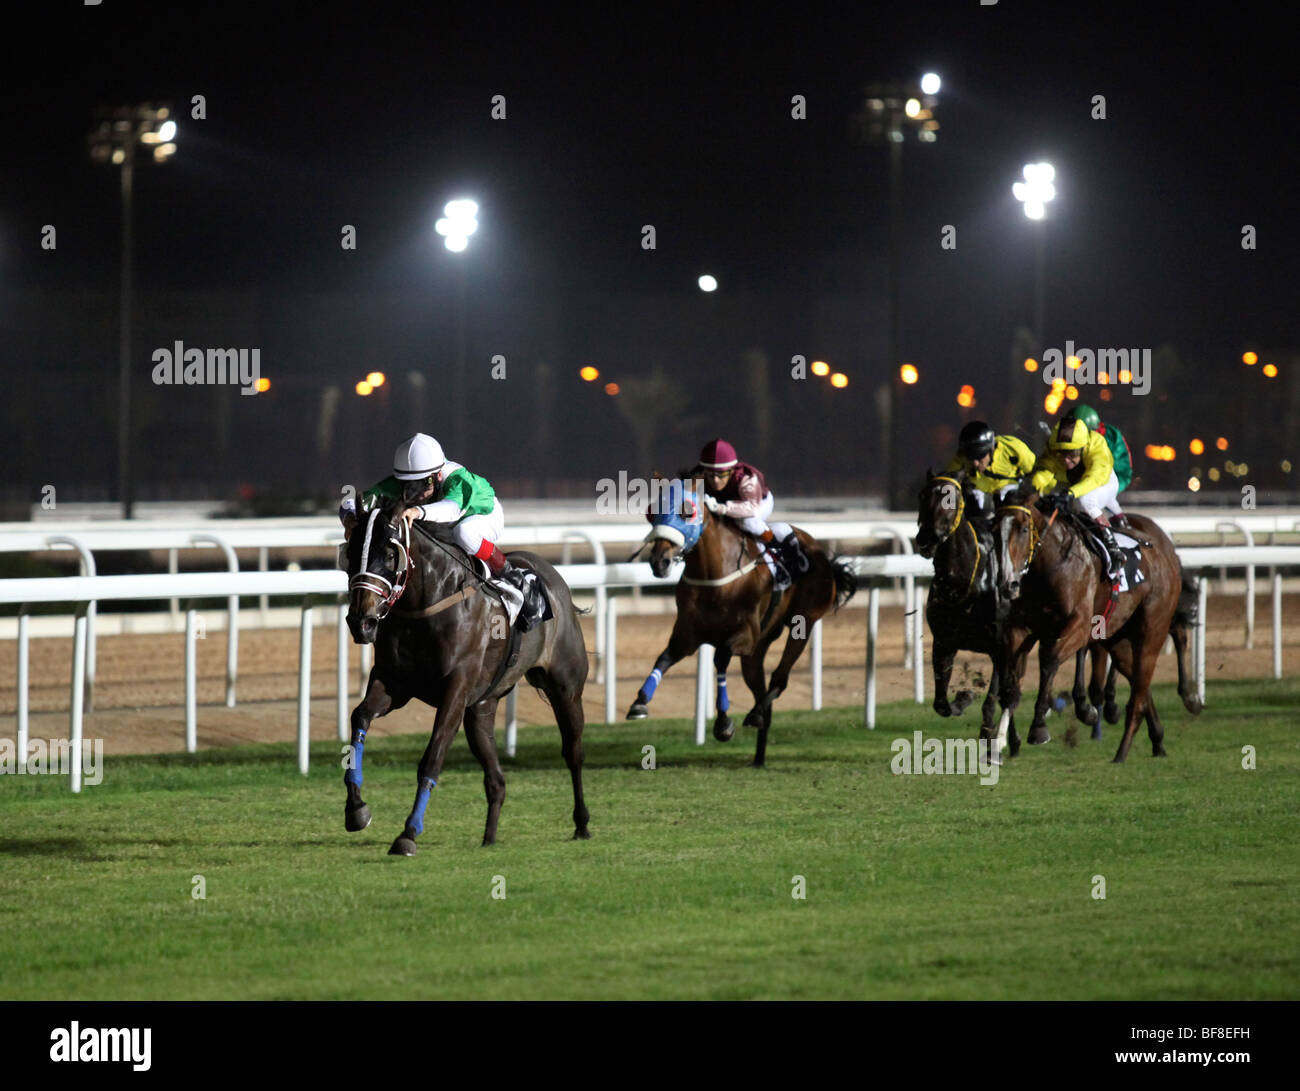 Action on the New Rayyan racecourse, in Doha, Qatar, at the Nov 5, 2009 meet - Stock Image